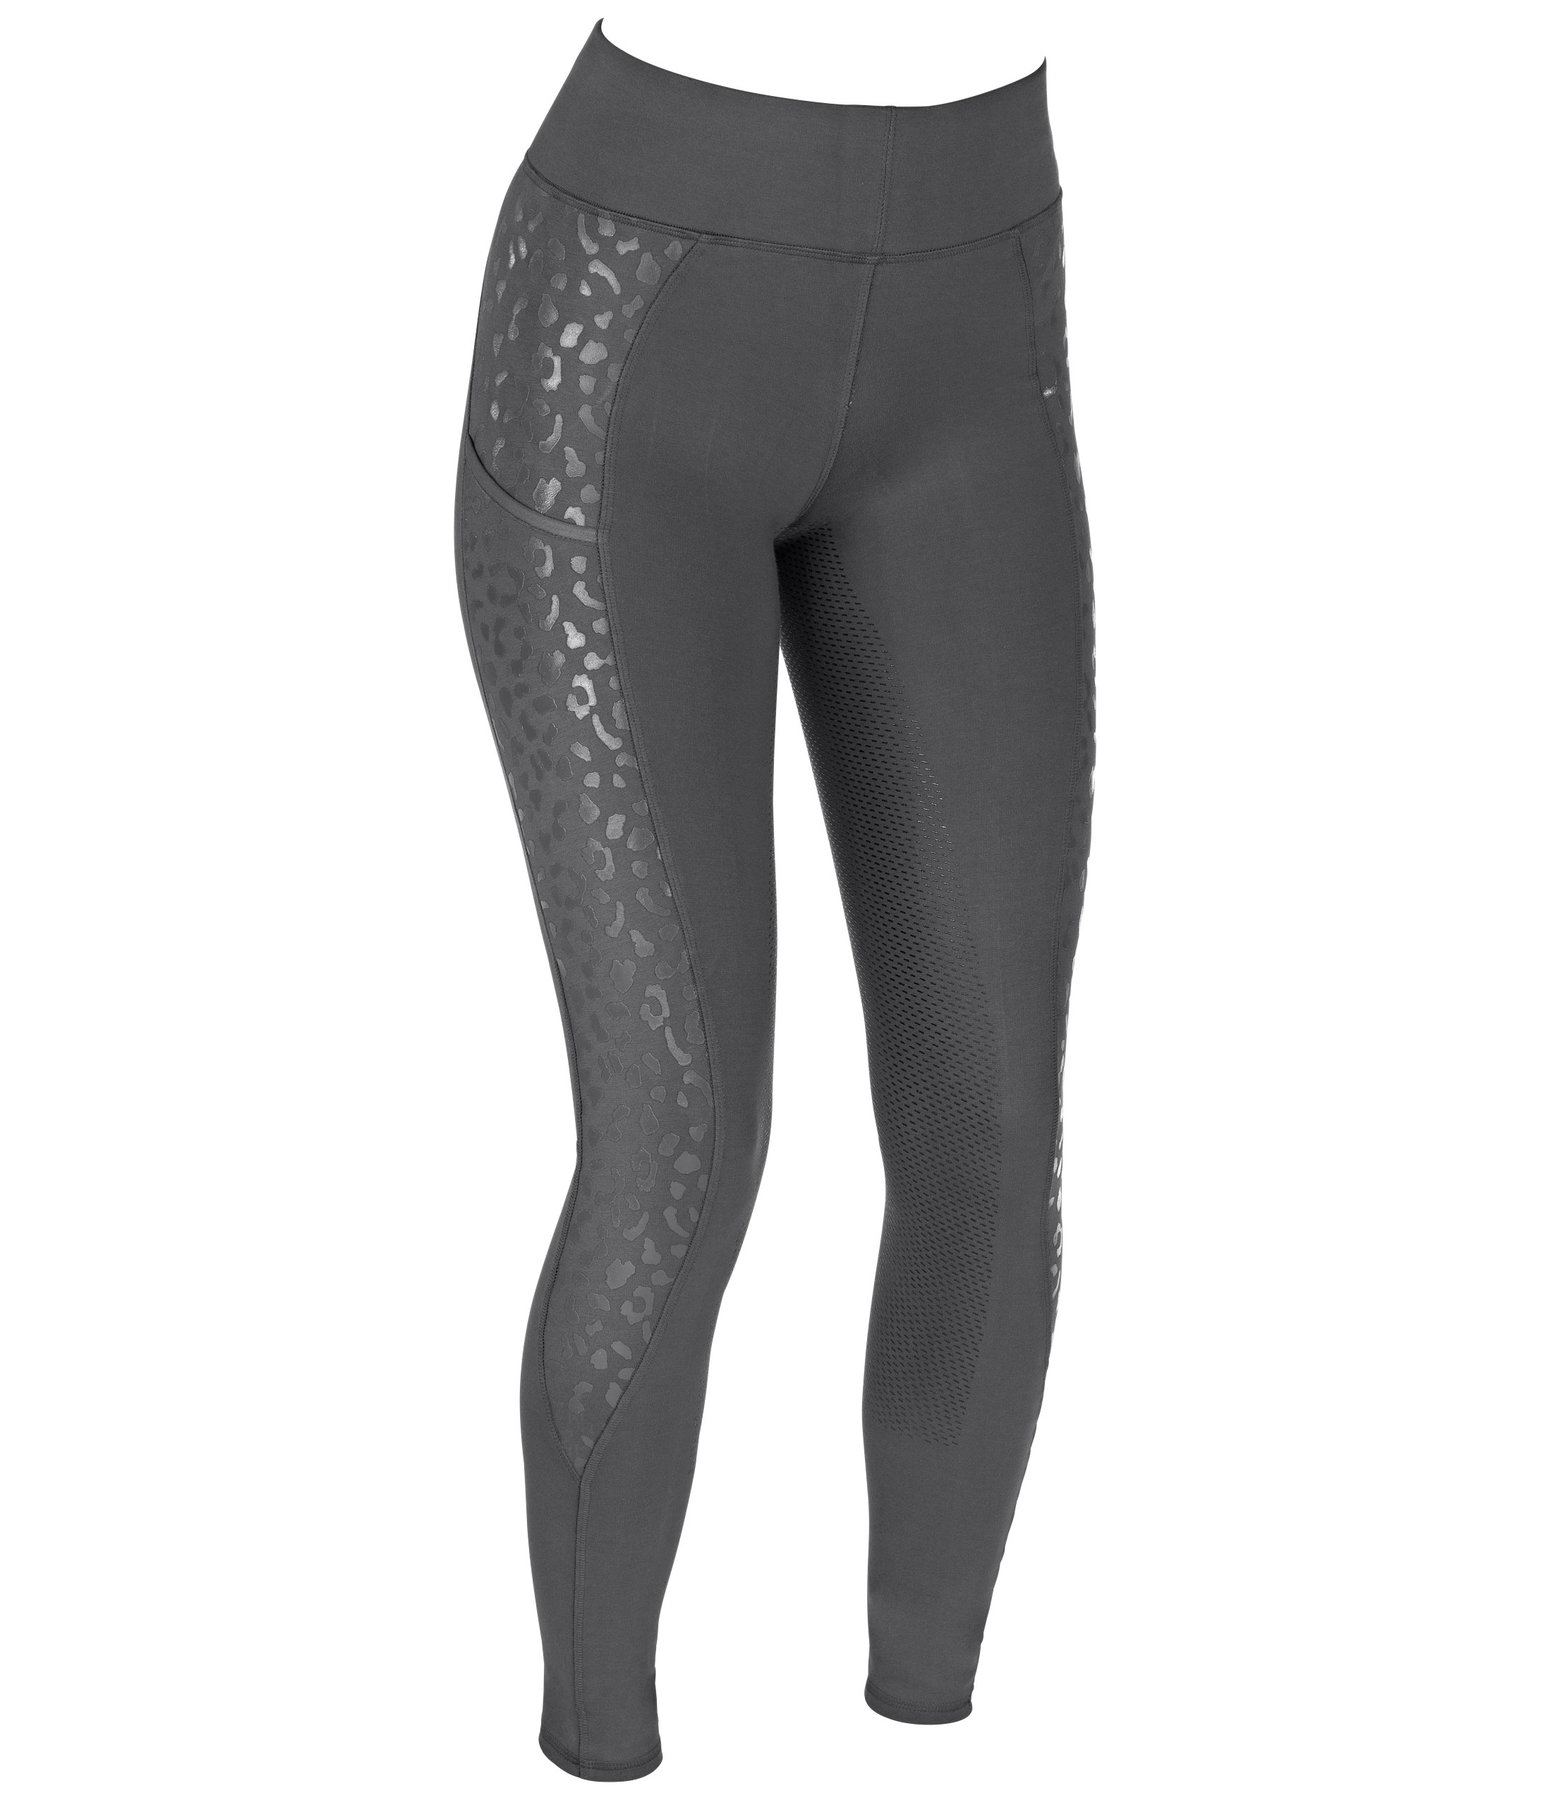 Grip-Vollbesatzreitleggings Alicia II